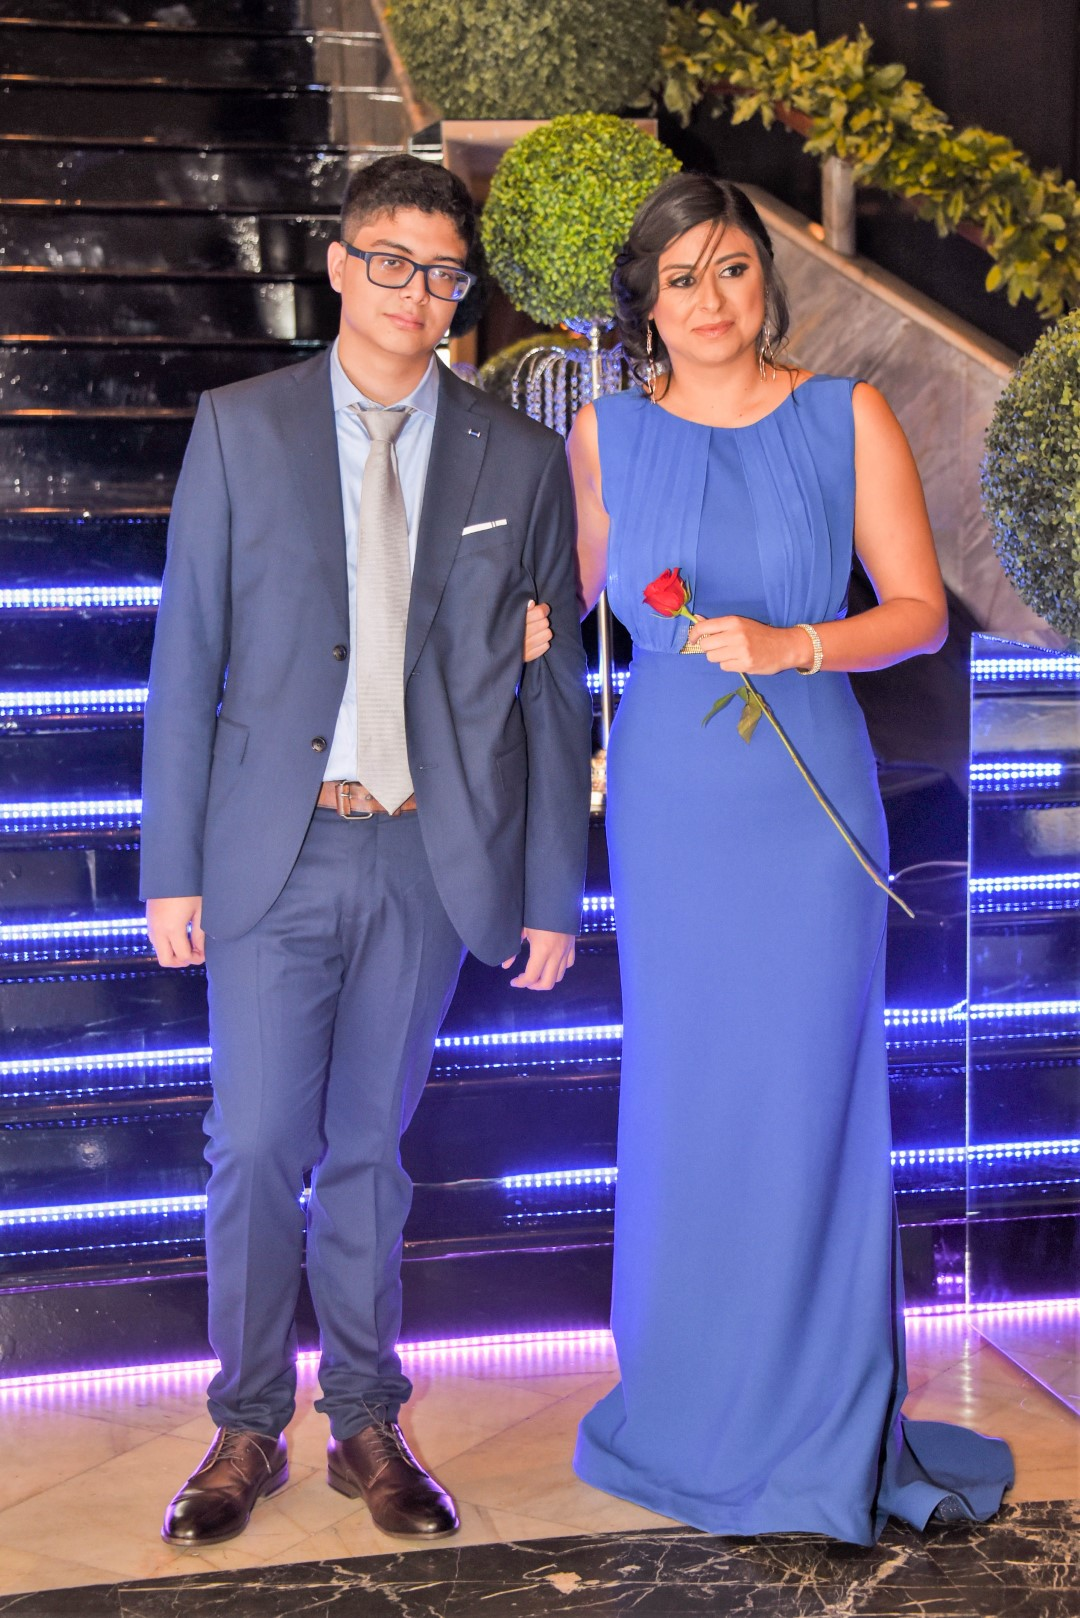 Senior Prom CEAD School 2019